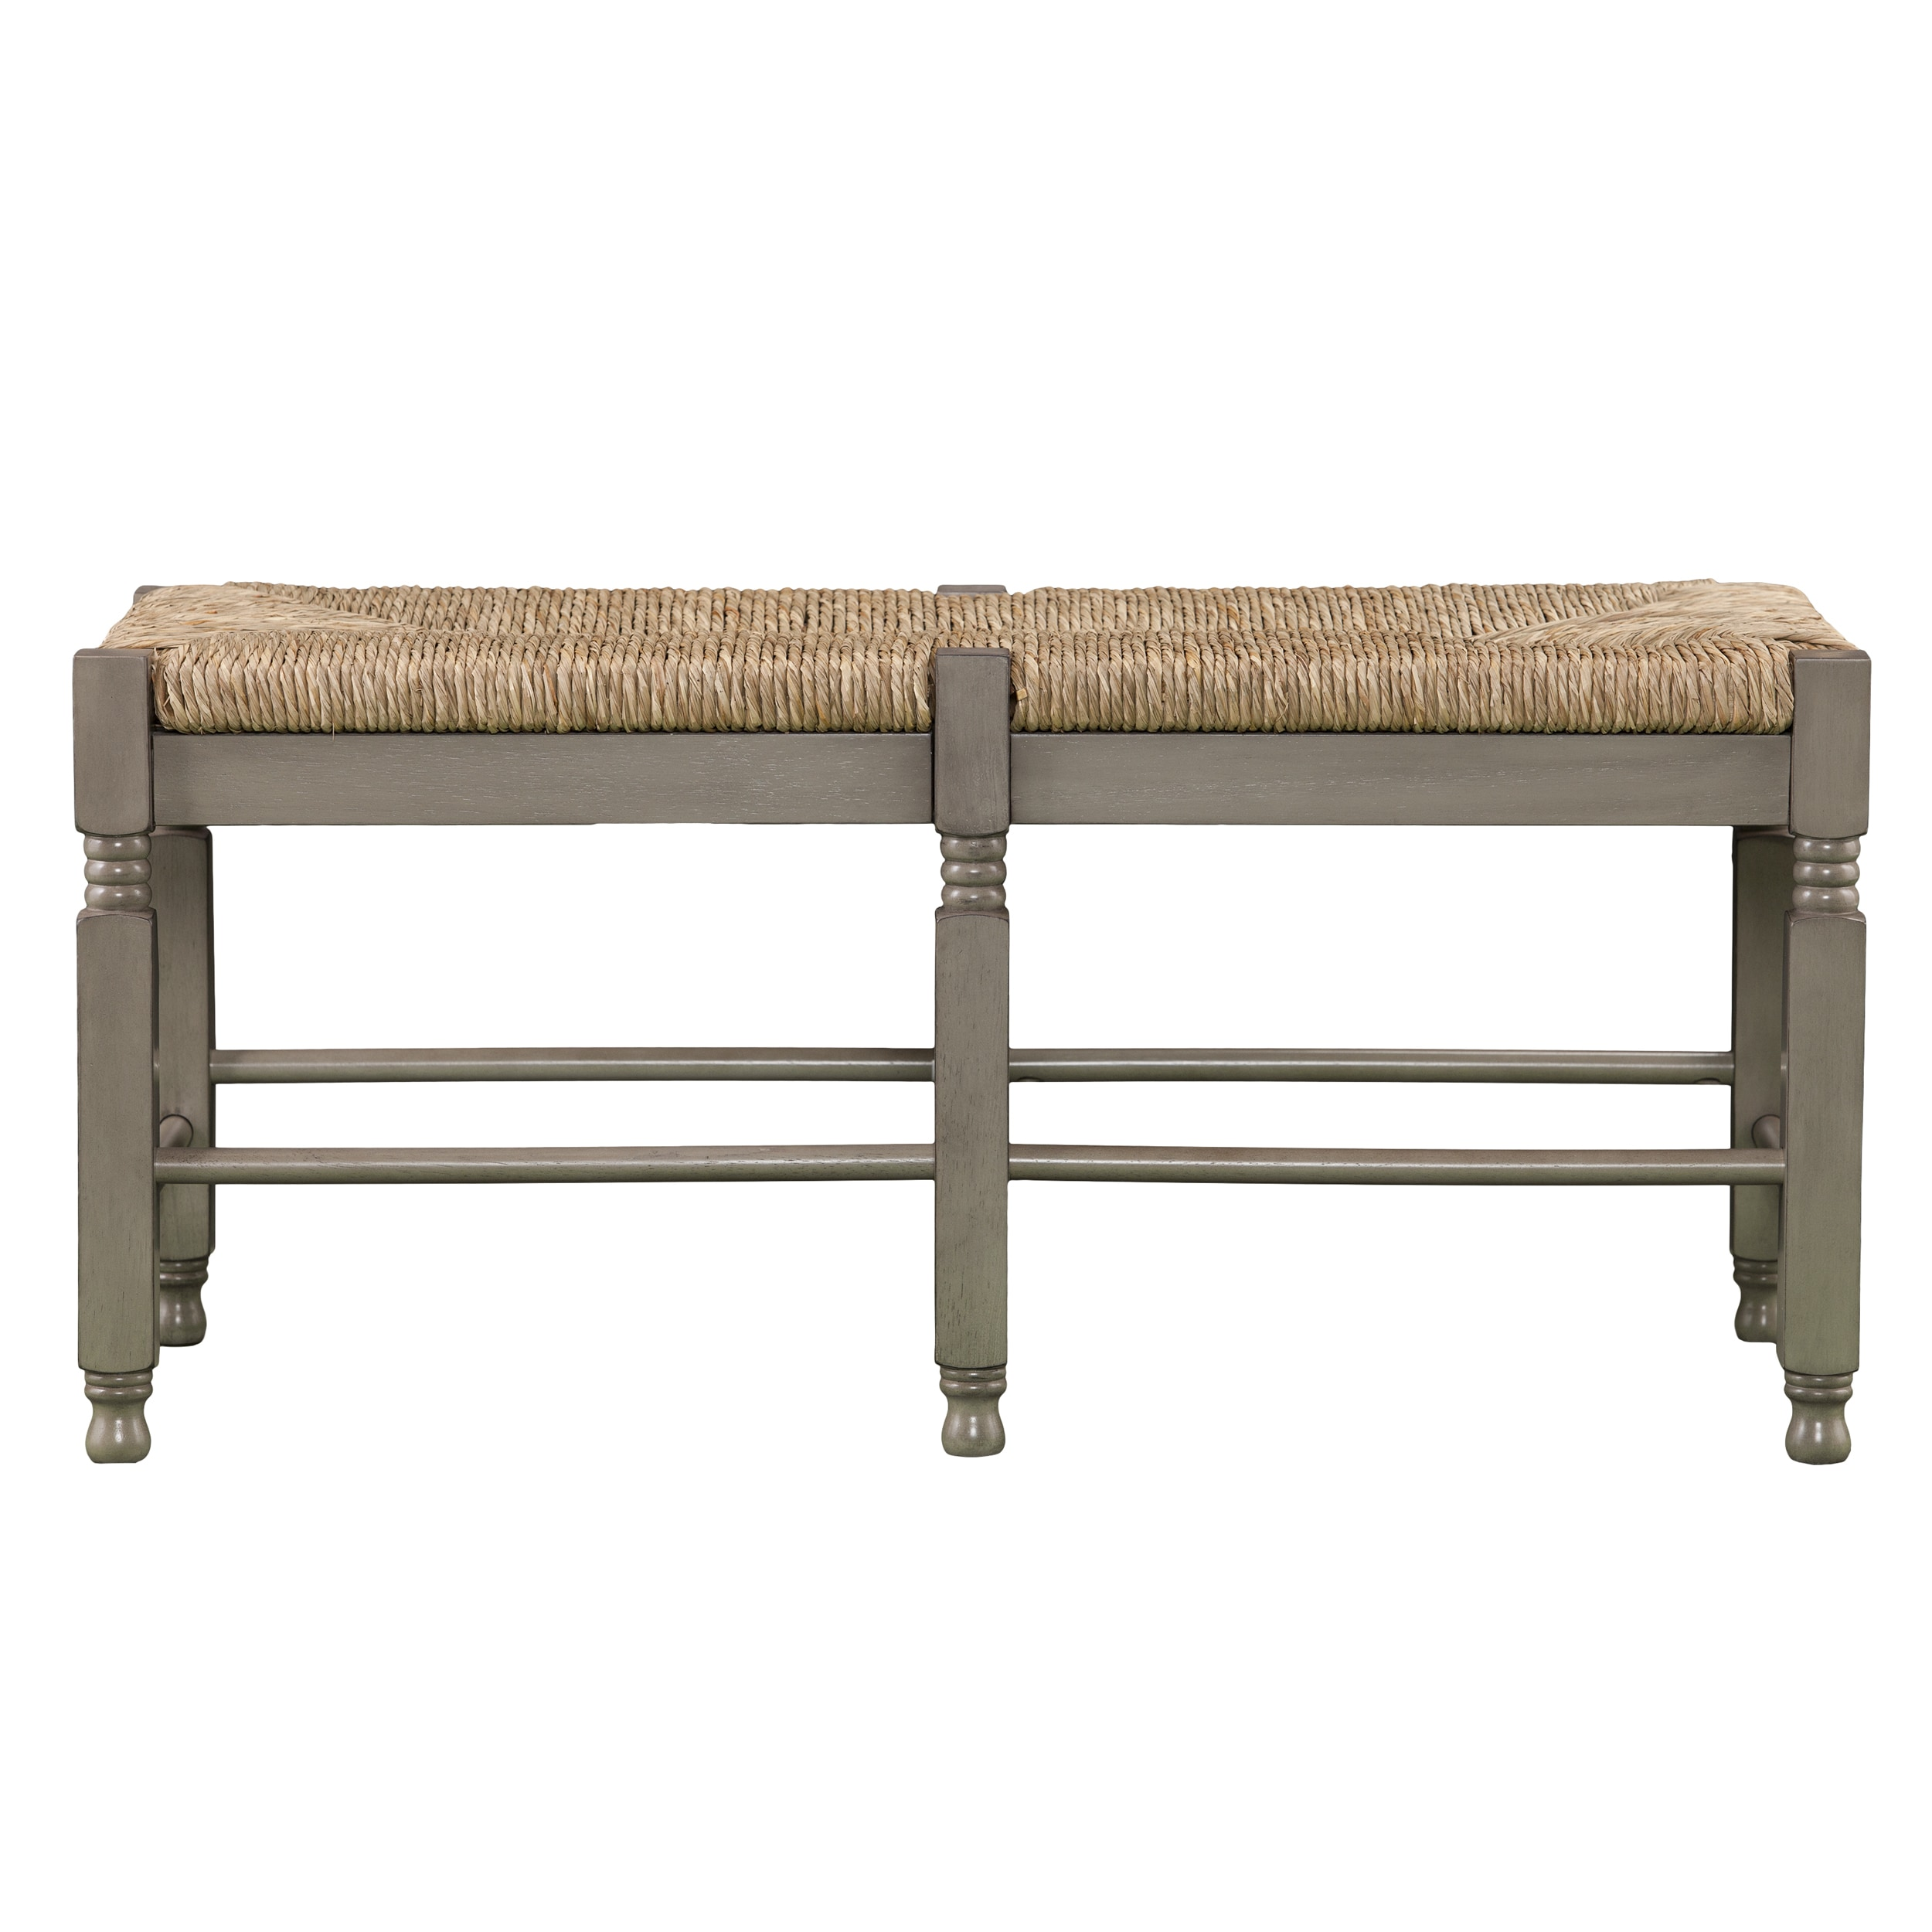 Perfect Harper Blvd Kennon Seagrass Bench/ Cocktail Table   Free Shipping Today    Overstock.com   22050530 Nice Look